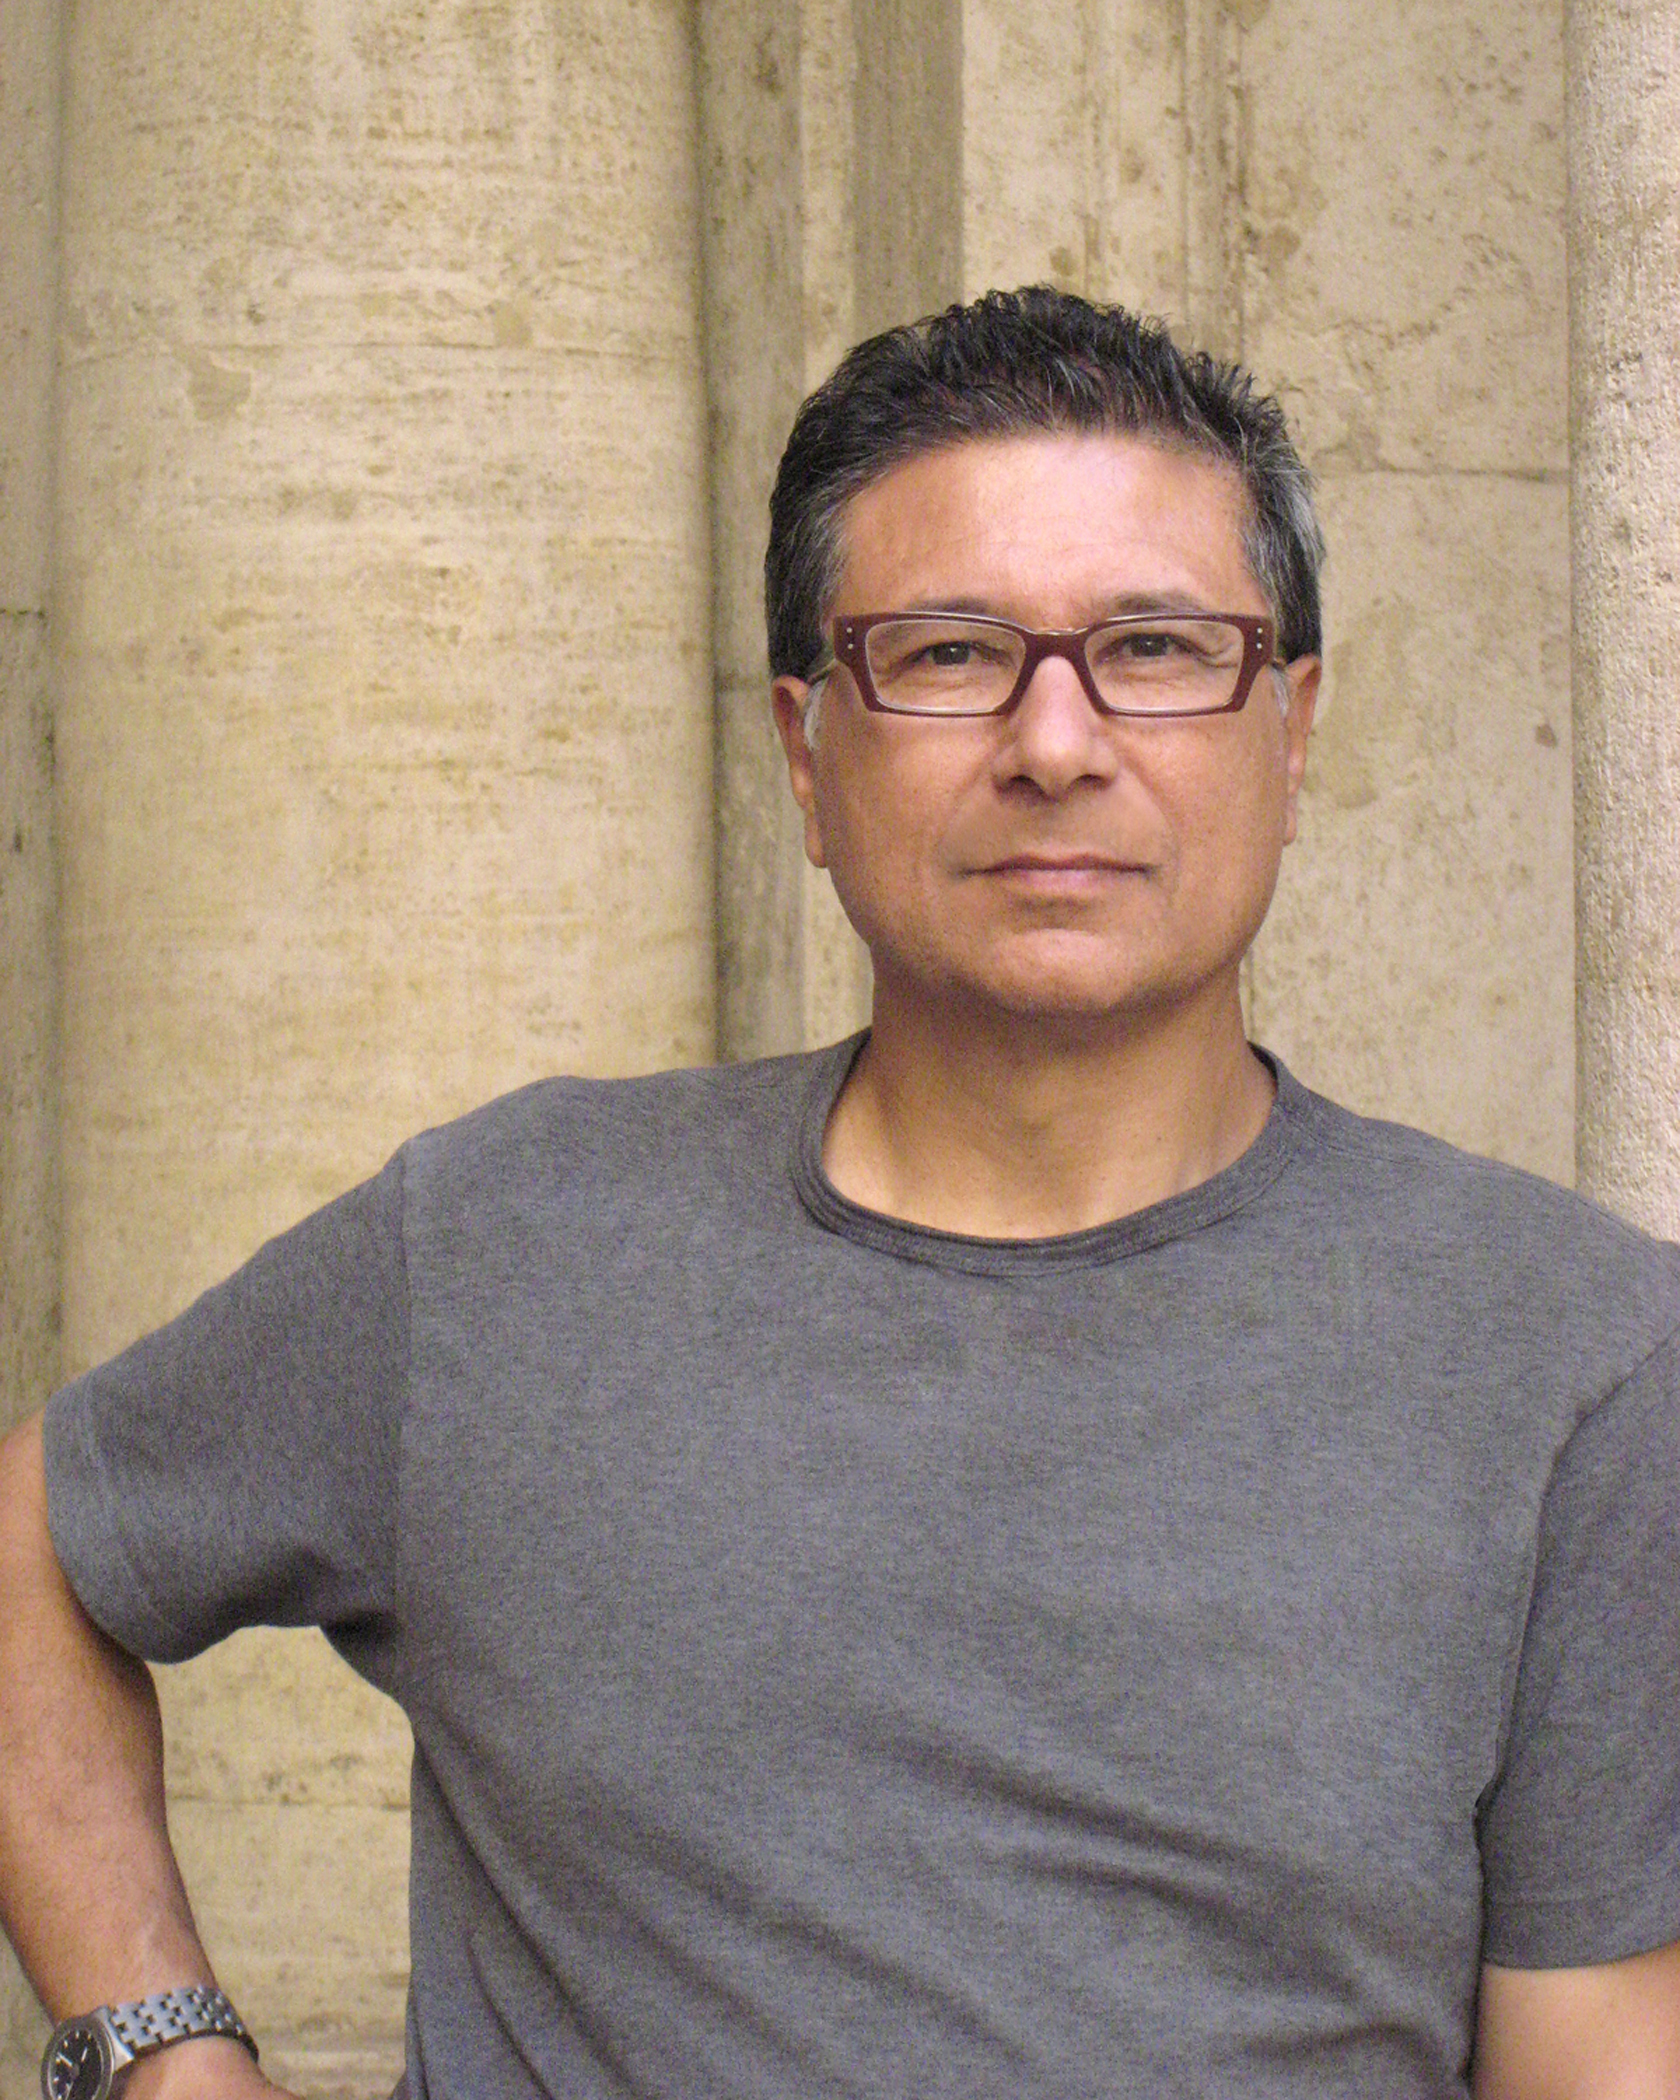 Image of John Casado from Wikidata